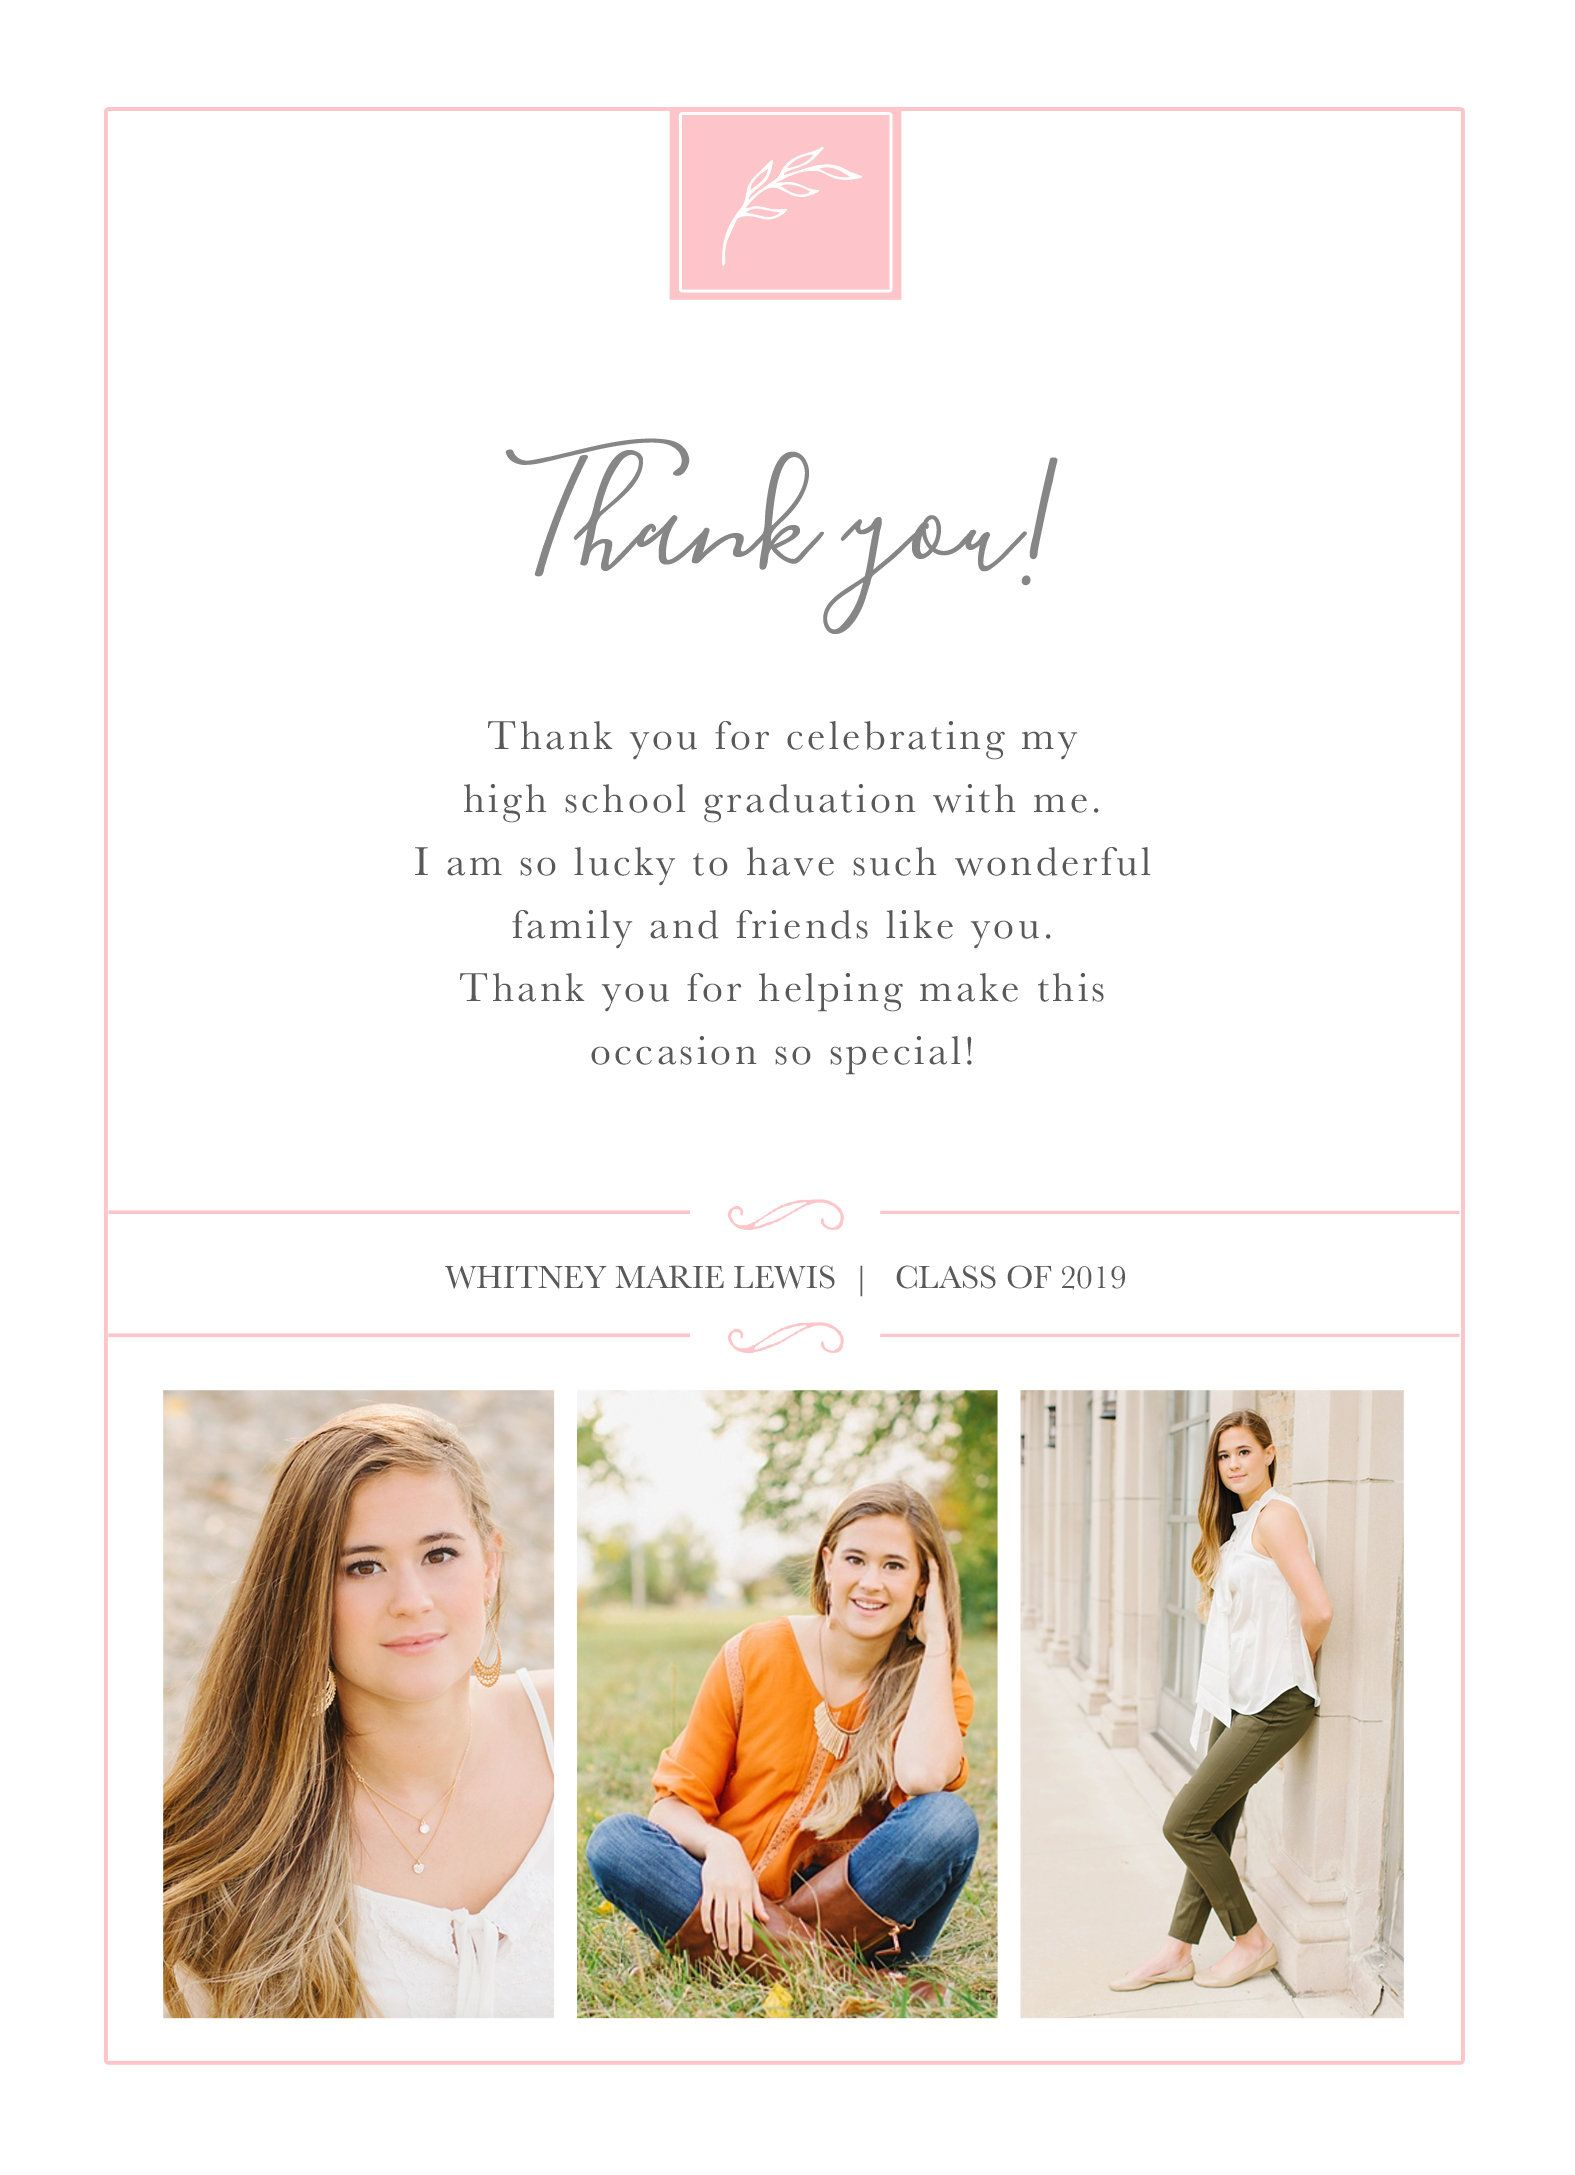 Graduation Thank You Card With Photo Personalized Card Etsy Graduation Thank You Cards Graduation Card Templates Graduation Invitations Template